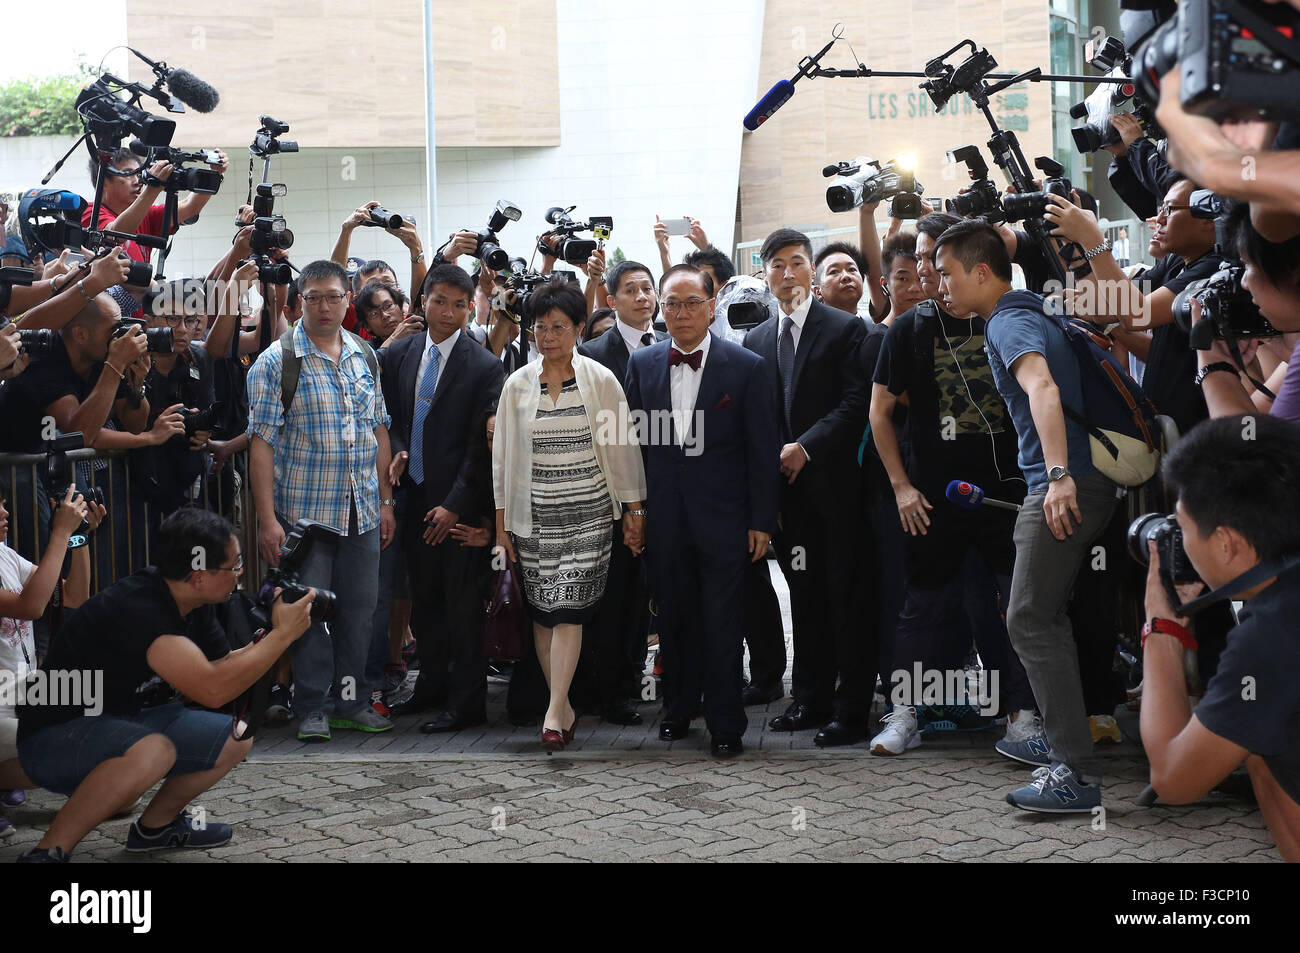 Hong Kong. 5th Oct, 2015. Donald Tsang Yam-kuen, former chief executive of the Hong Kong Special Administrative - Stock Image